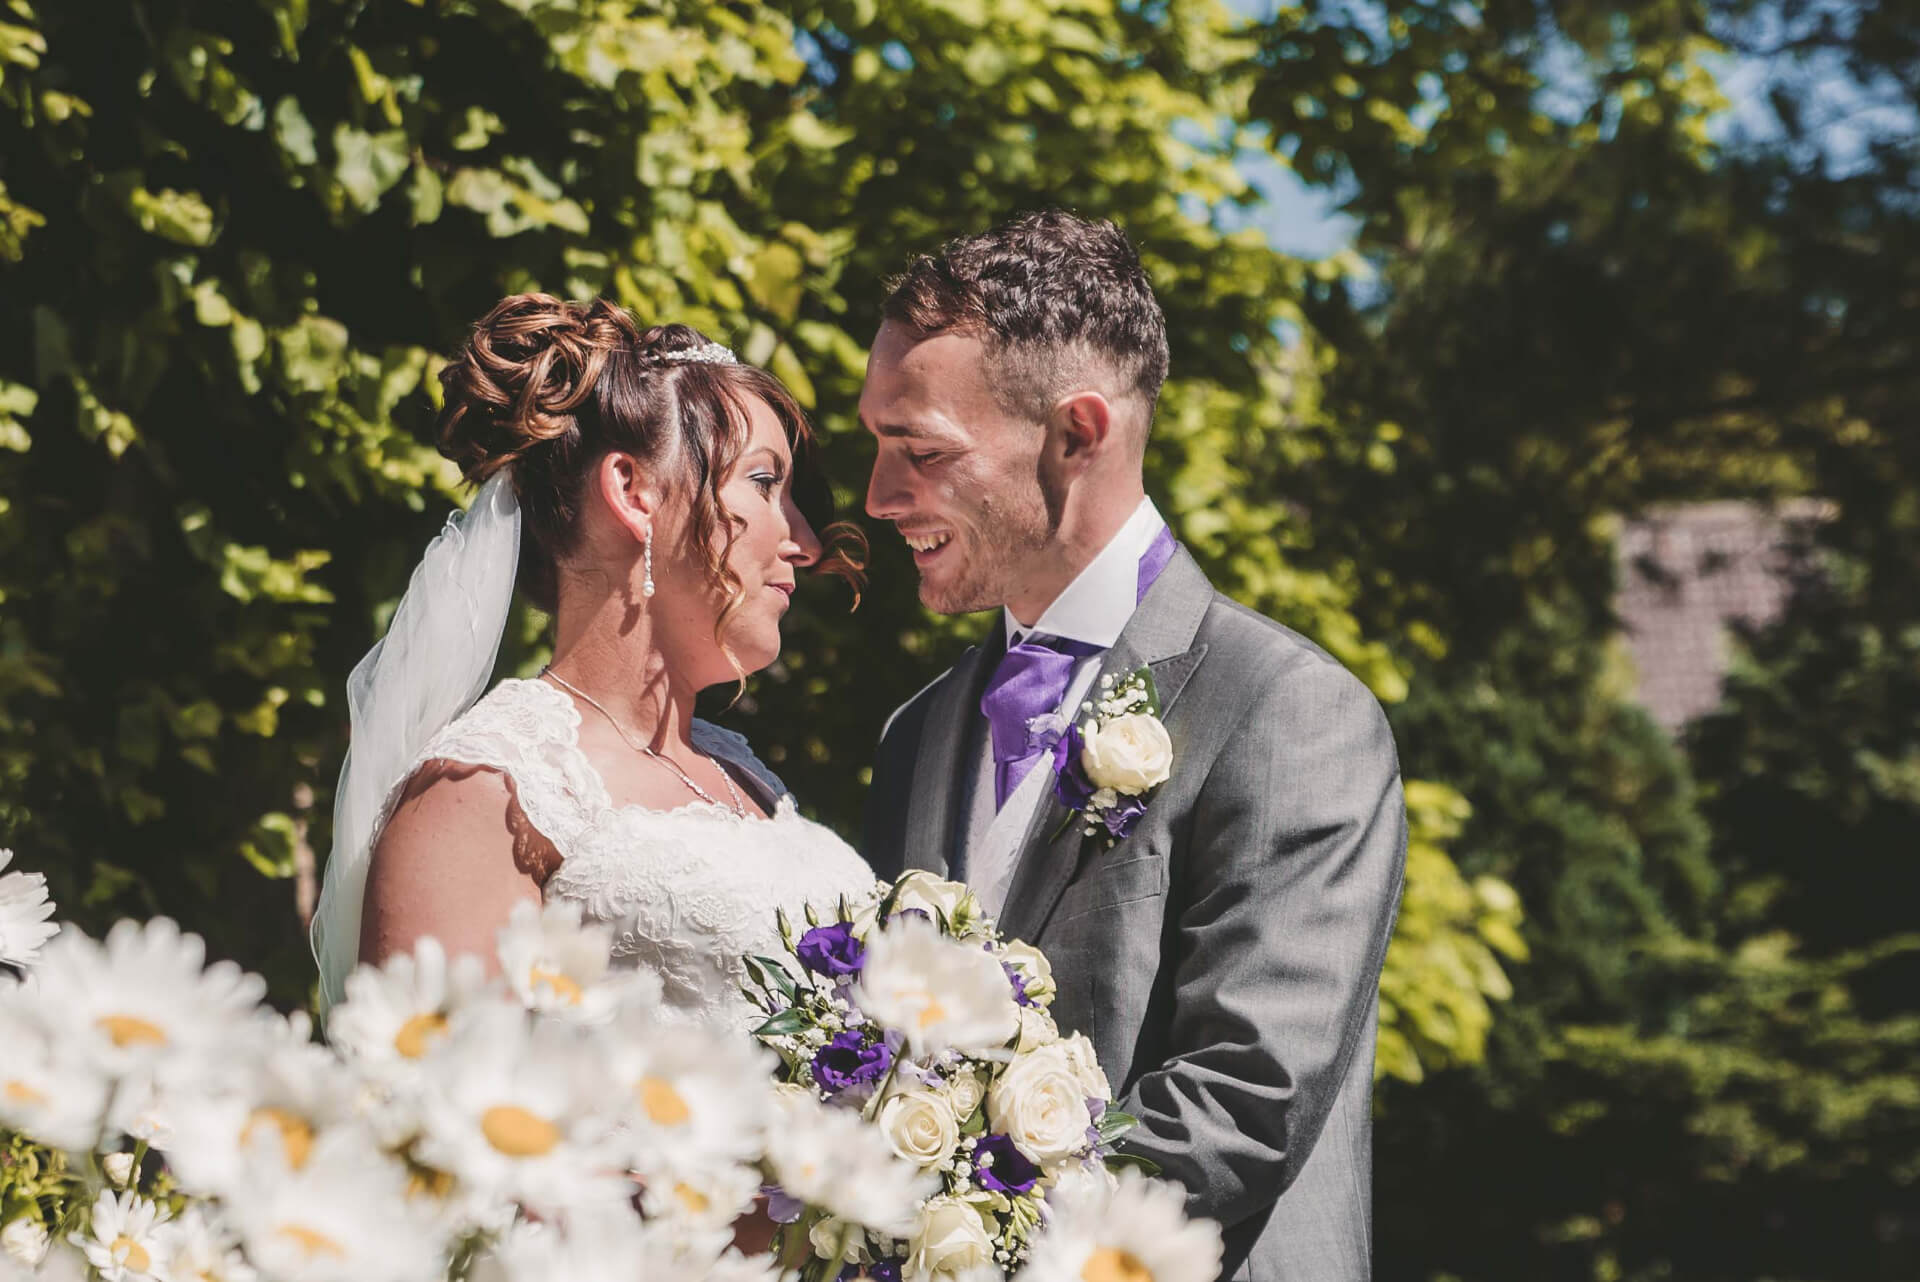 Bride and groom portrait - Lincolnshire wedding photographer - Slice of Life Photography